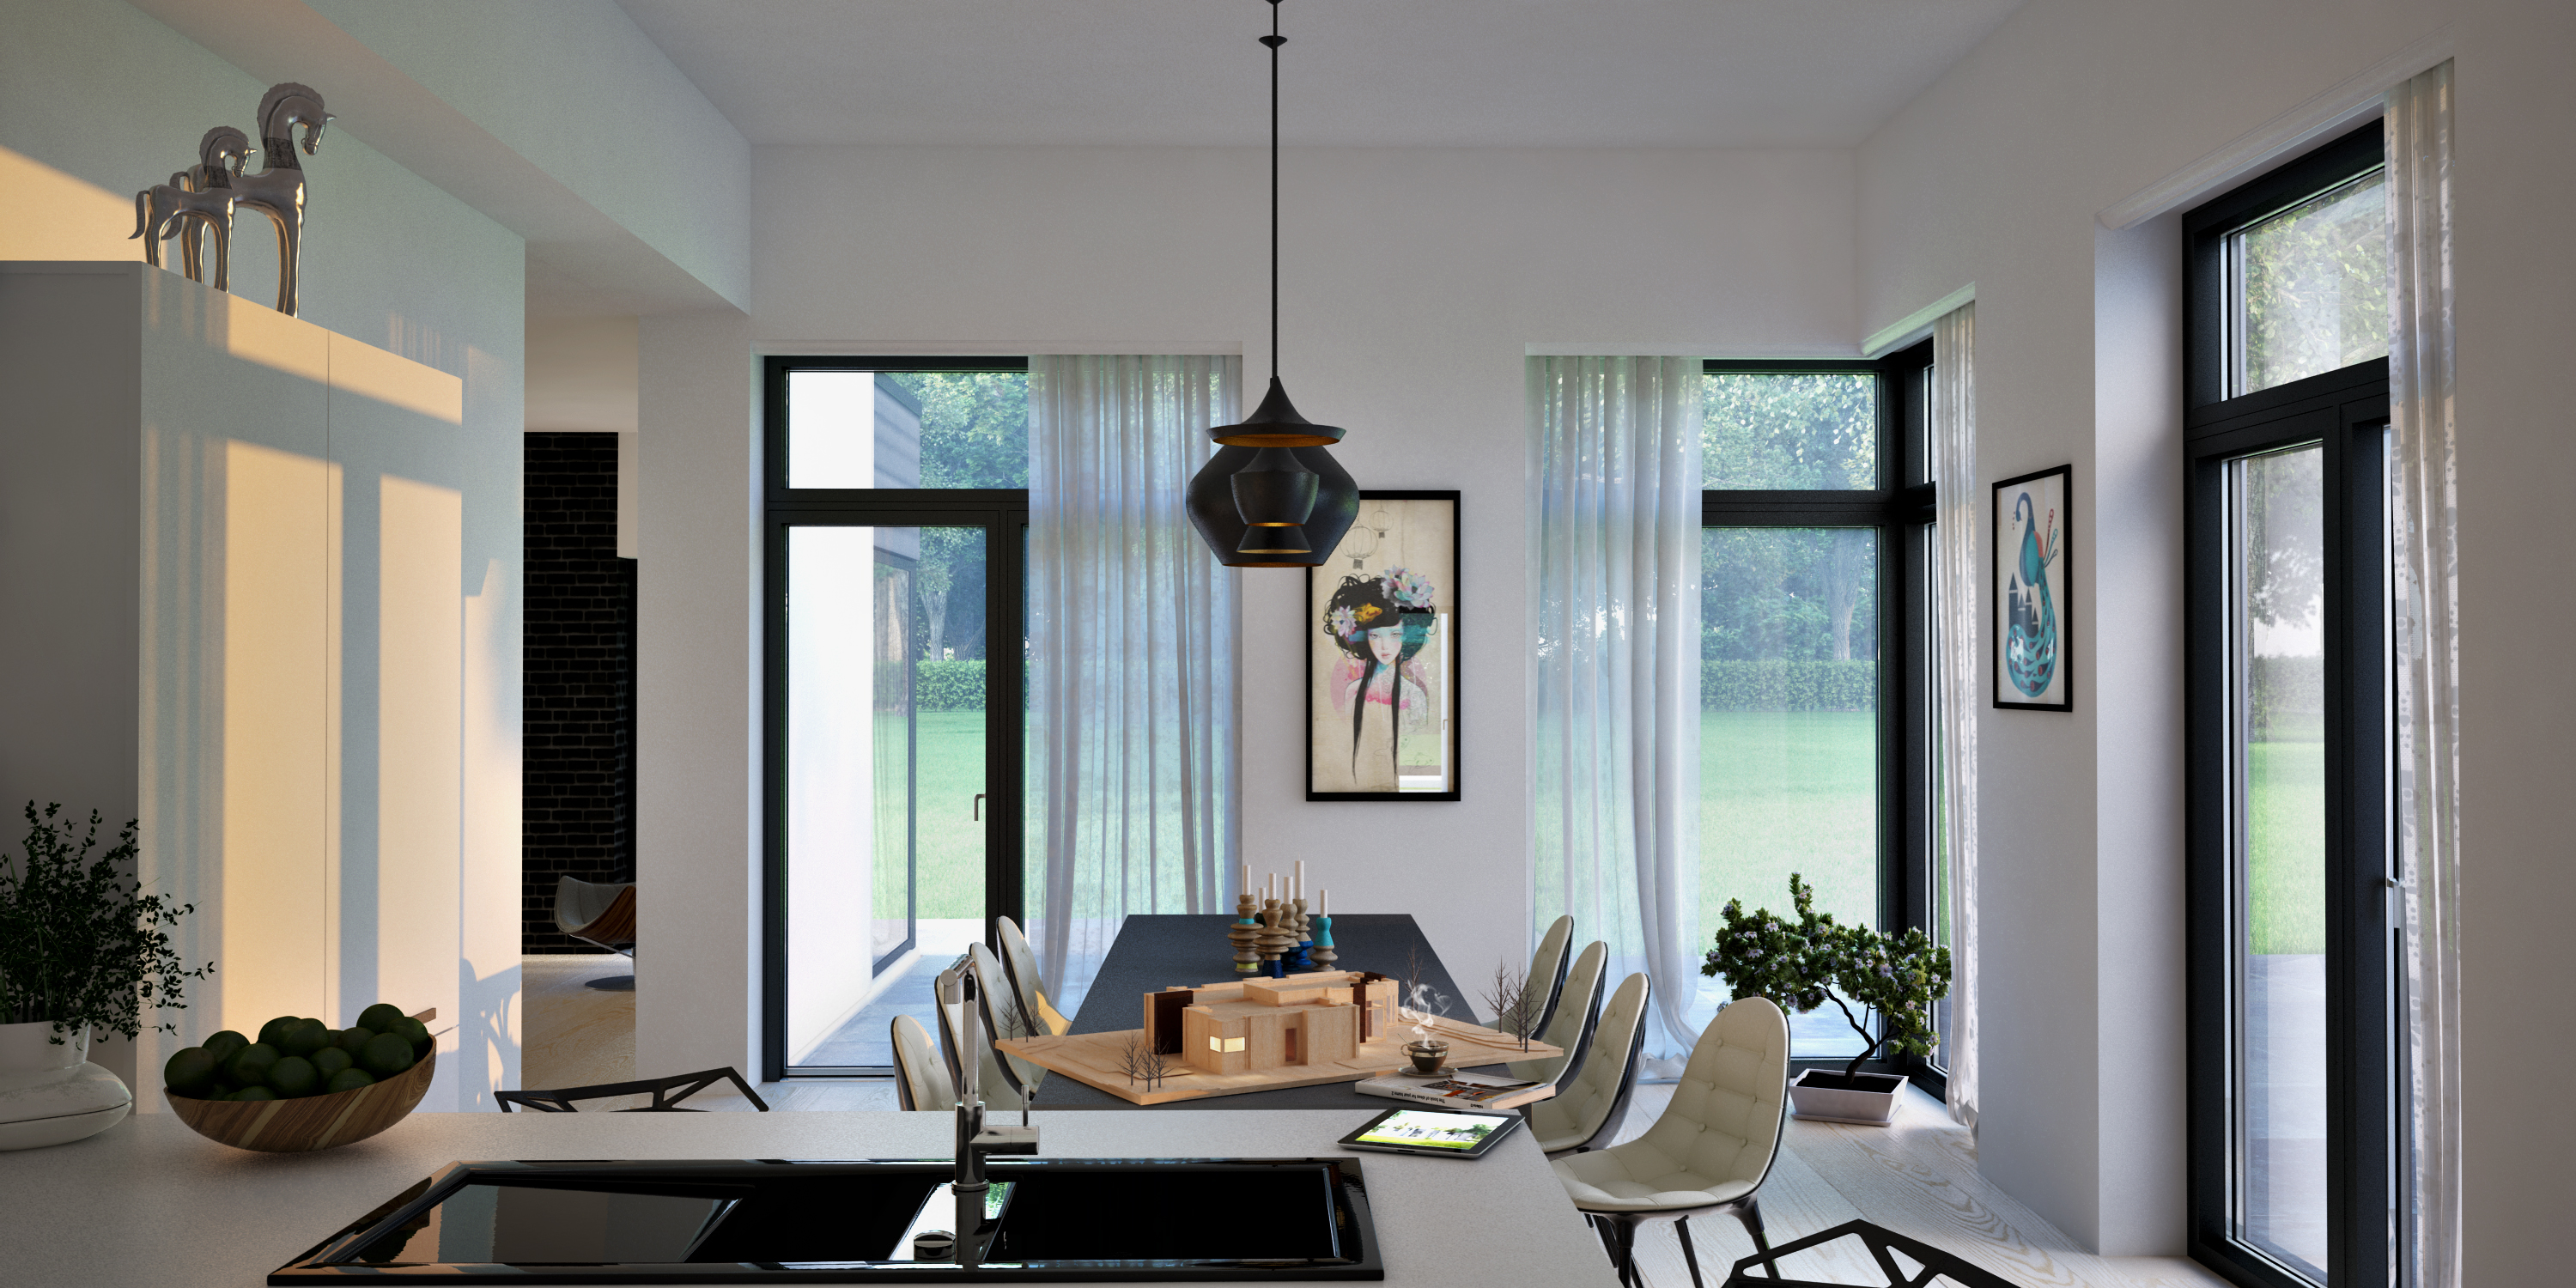 20-dining-rooms-visualized-7